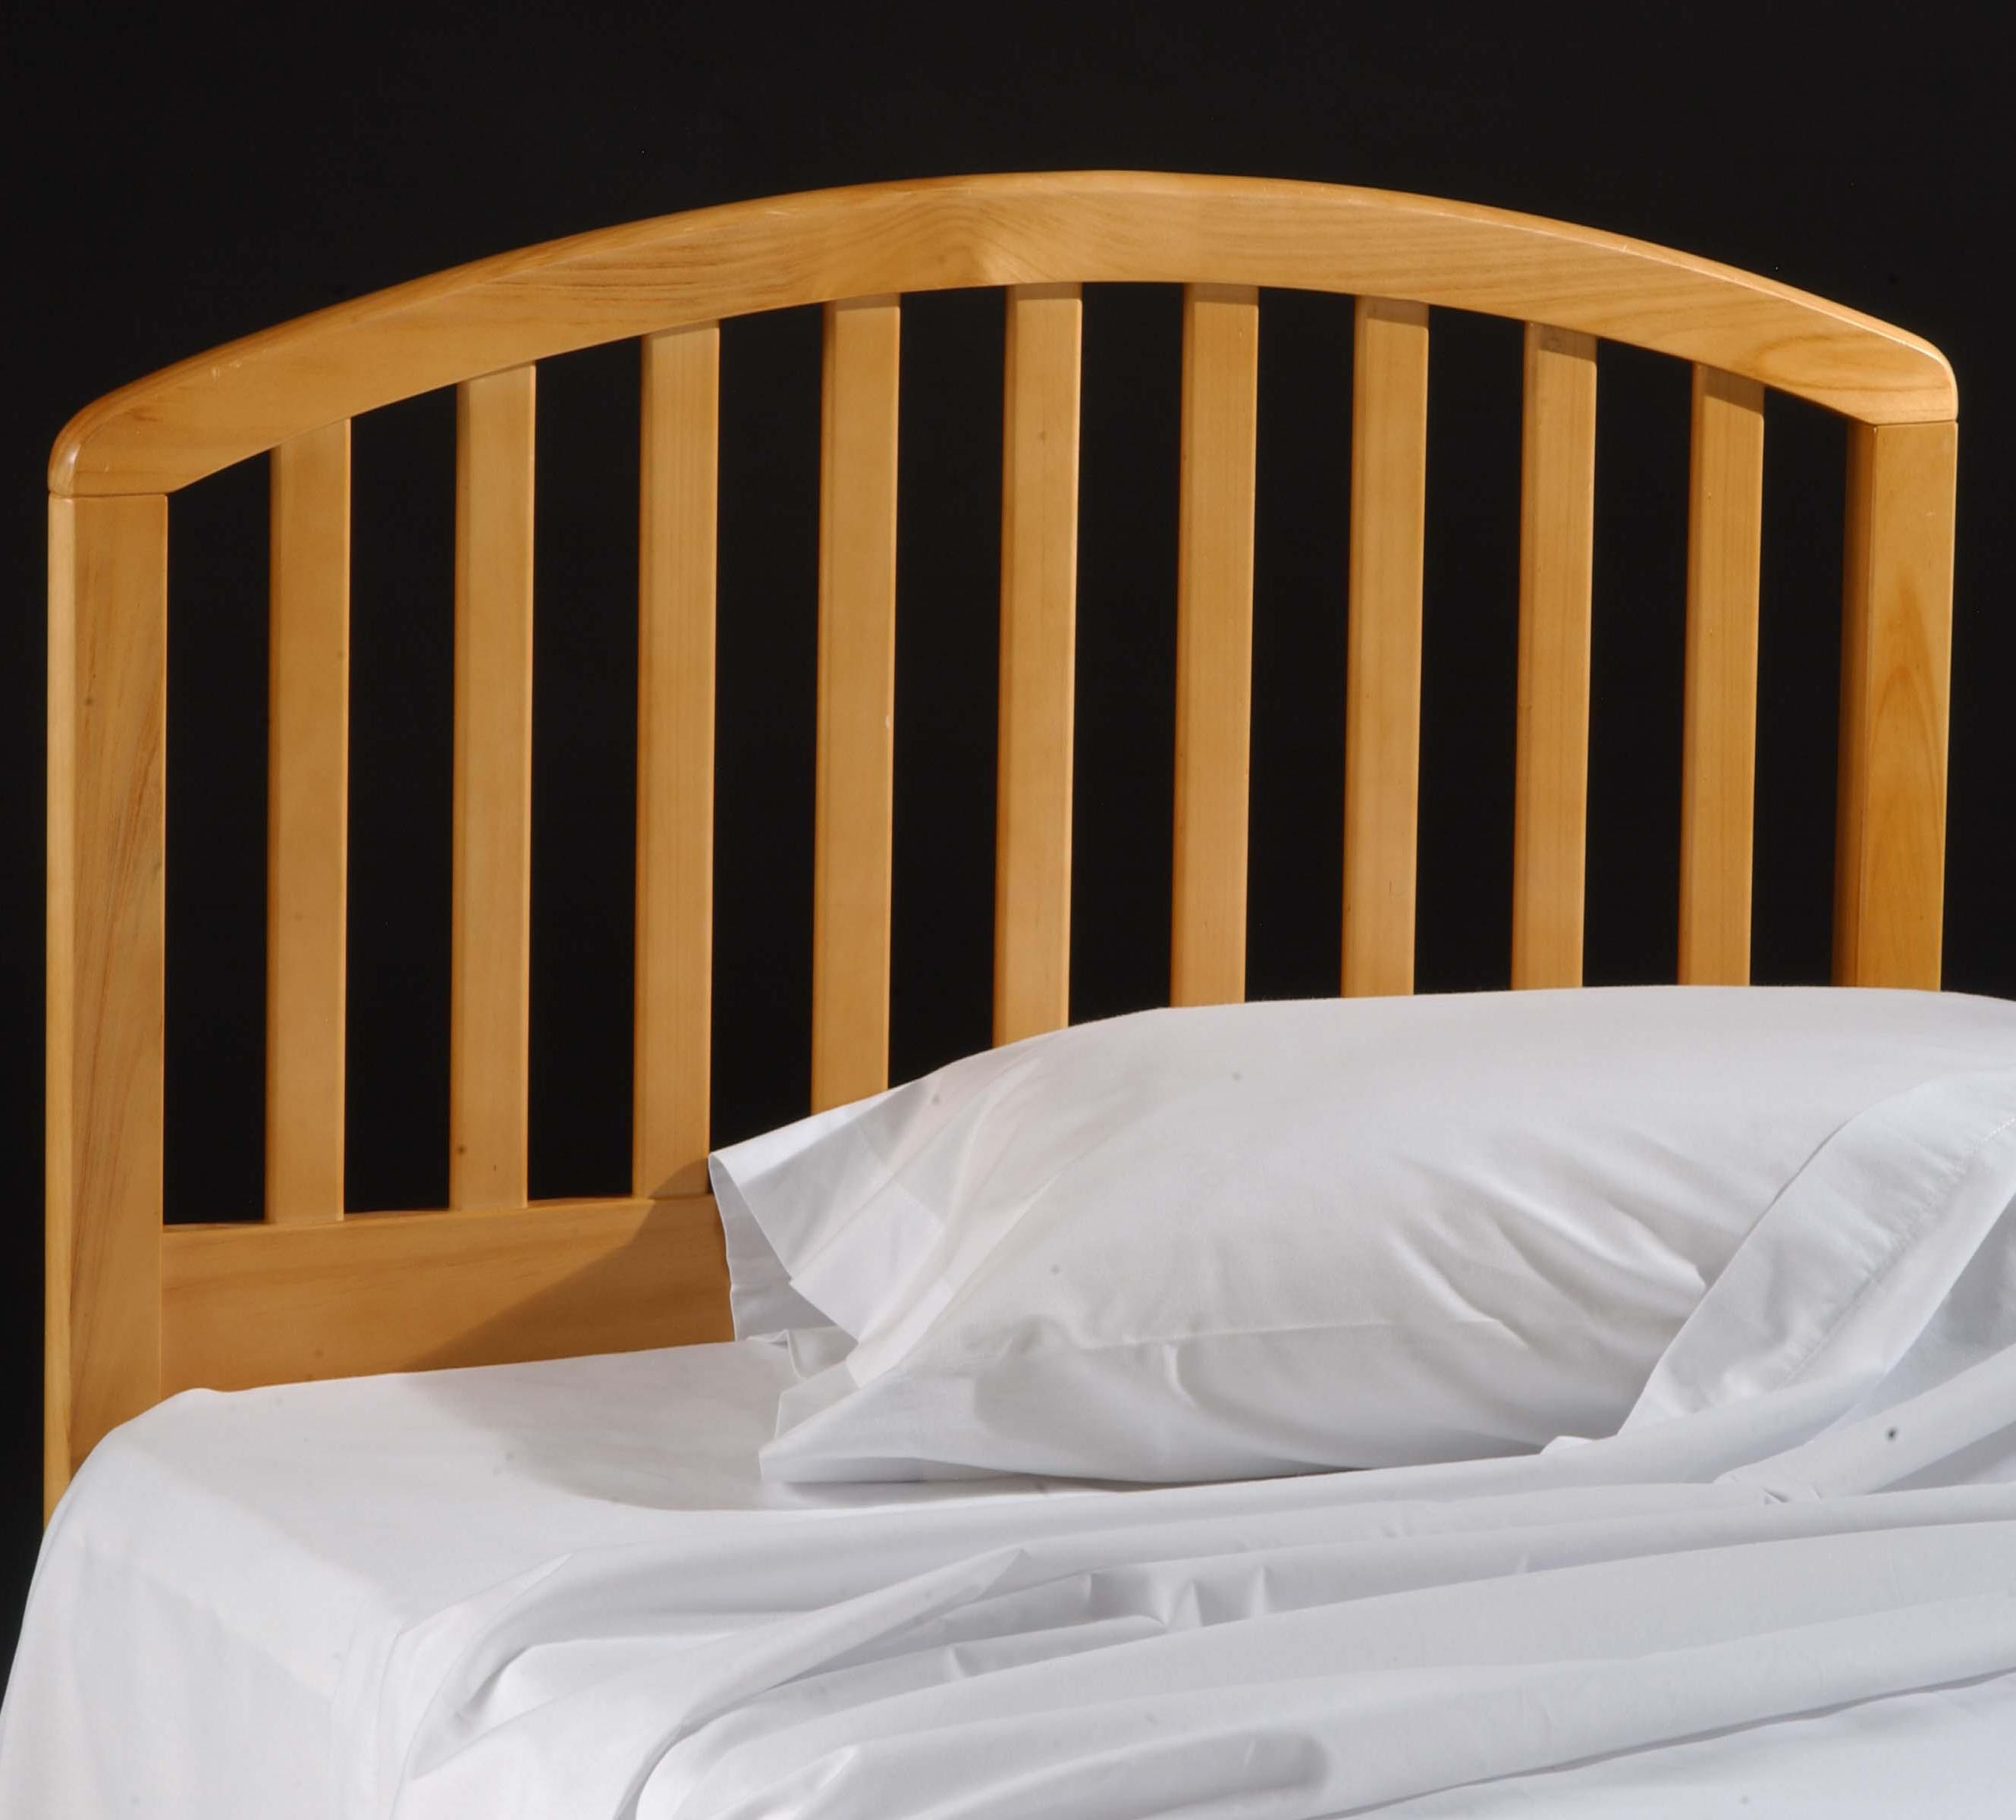 Hillsdale Wood Beds Full/Queen Carolina Headboard  - Item Number: 1108HFQR